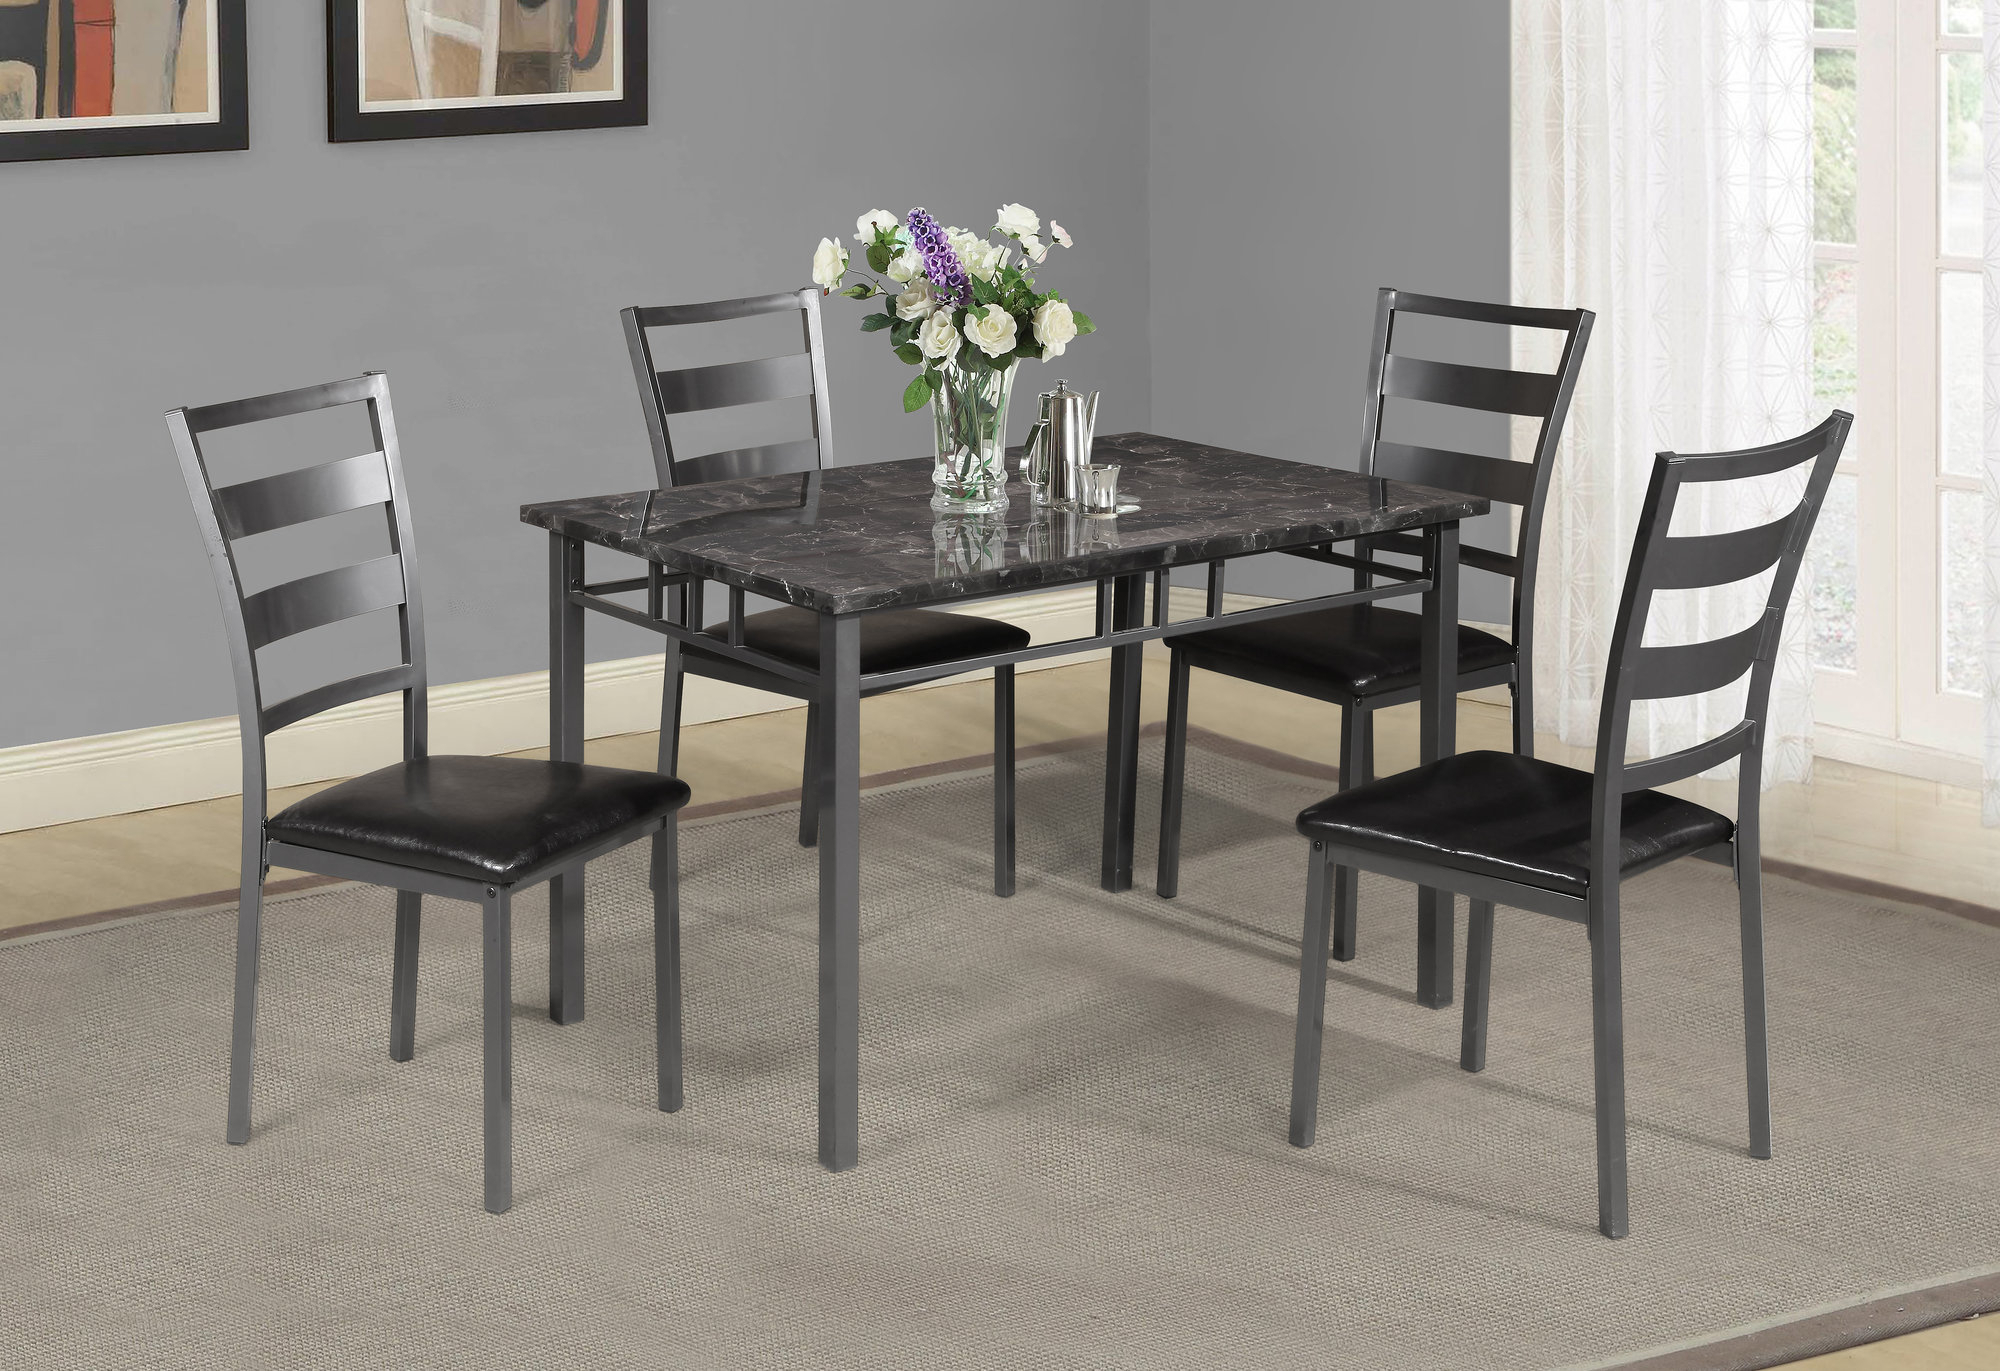 Details About Winston Porter Berke 5 Piece Dining Set Throughout Trendy Miskell 3 Piece Dining Sets (View 4 of 20)